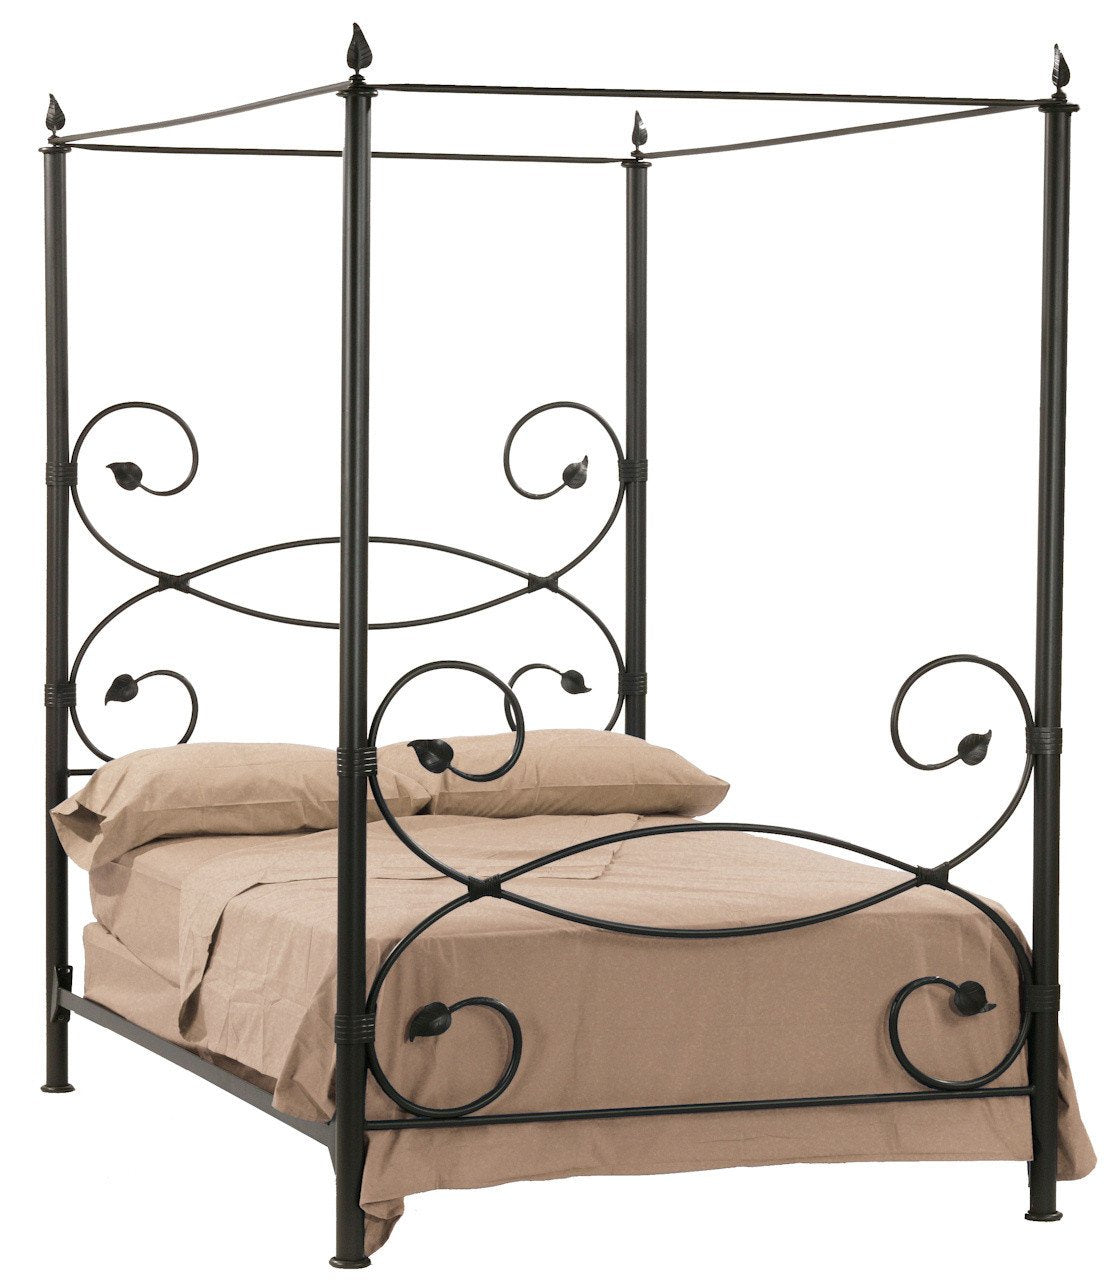 Stone County Canopy Twin Bed Leaf